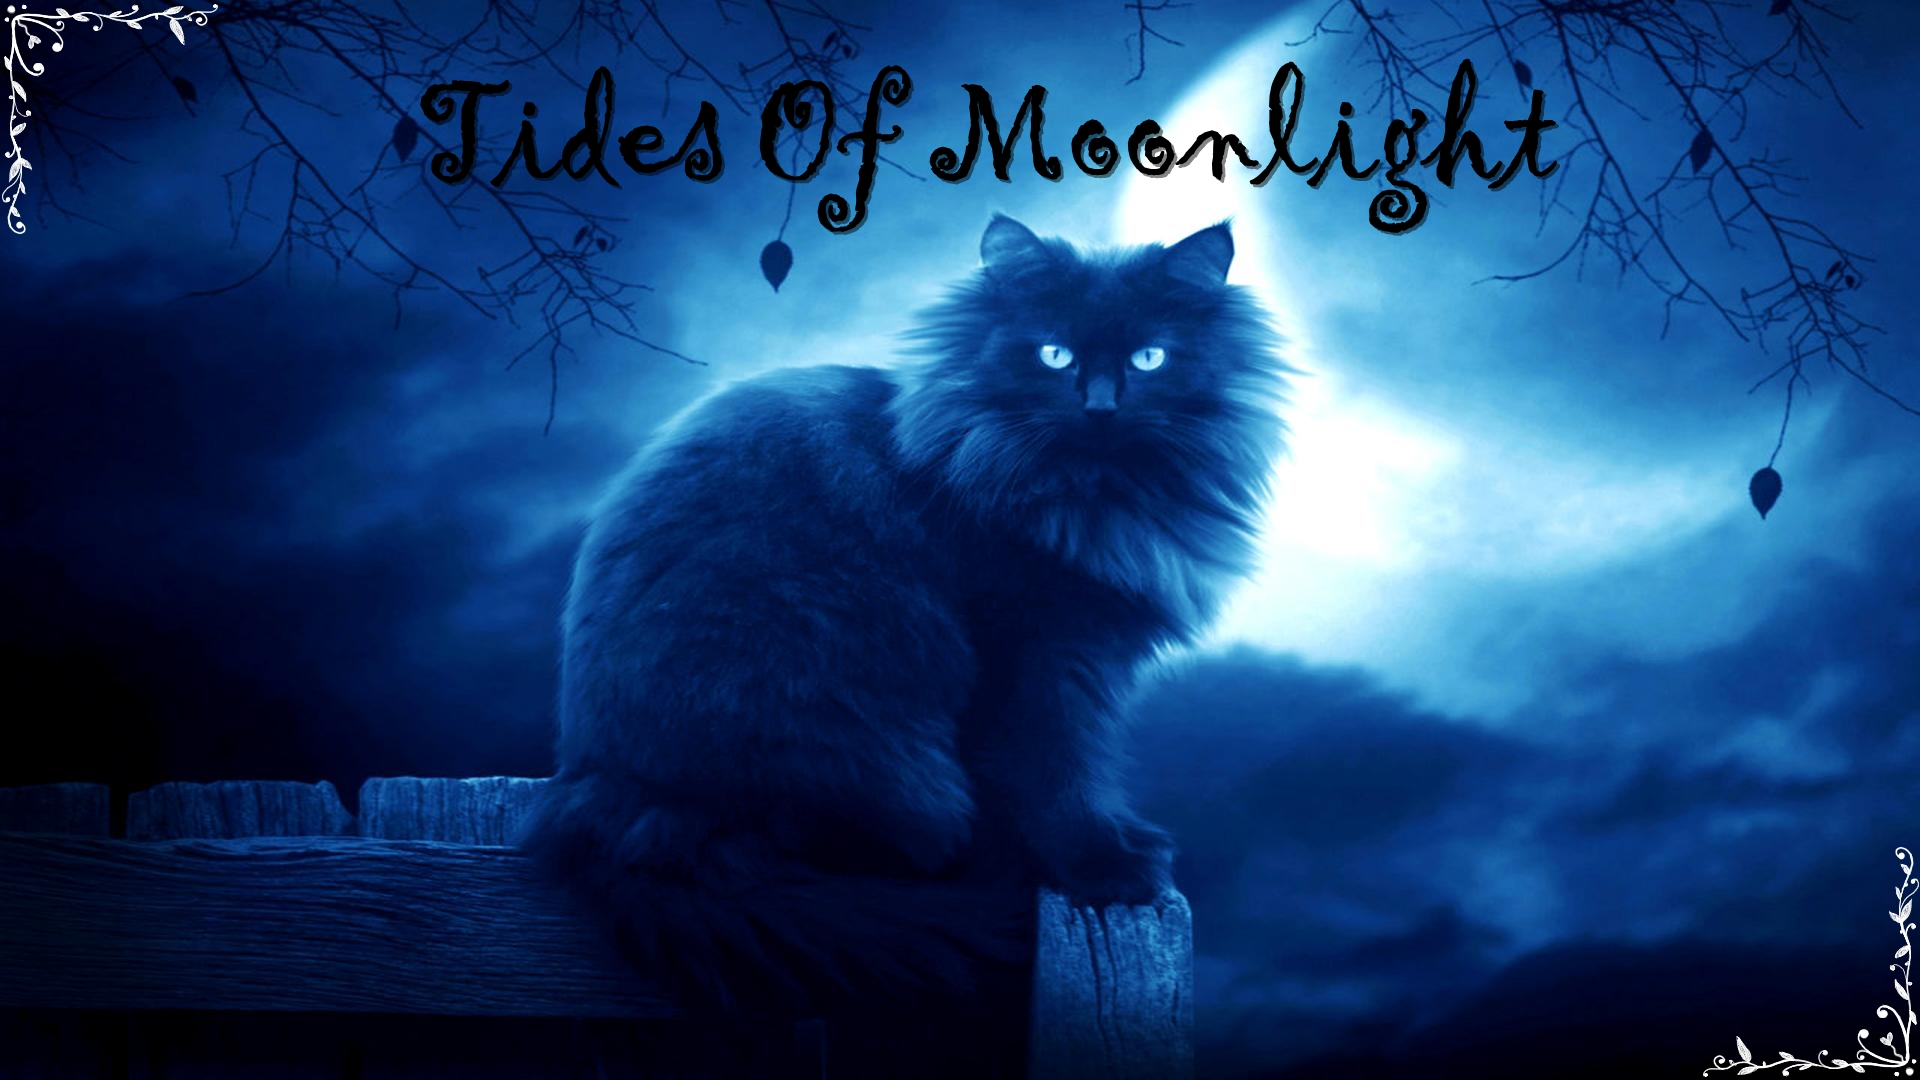 Tides Of Moonlight